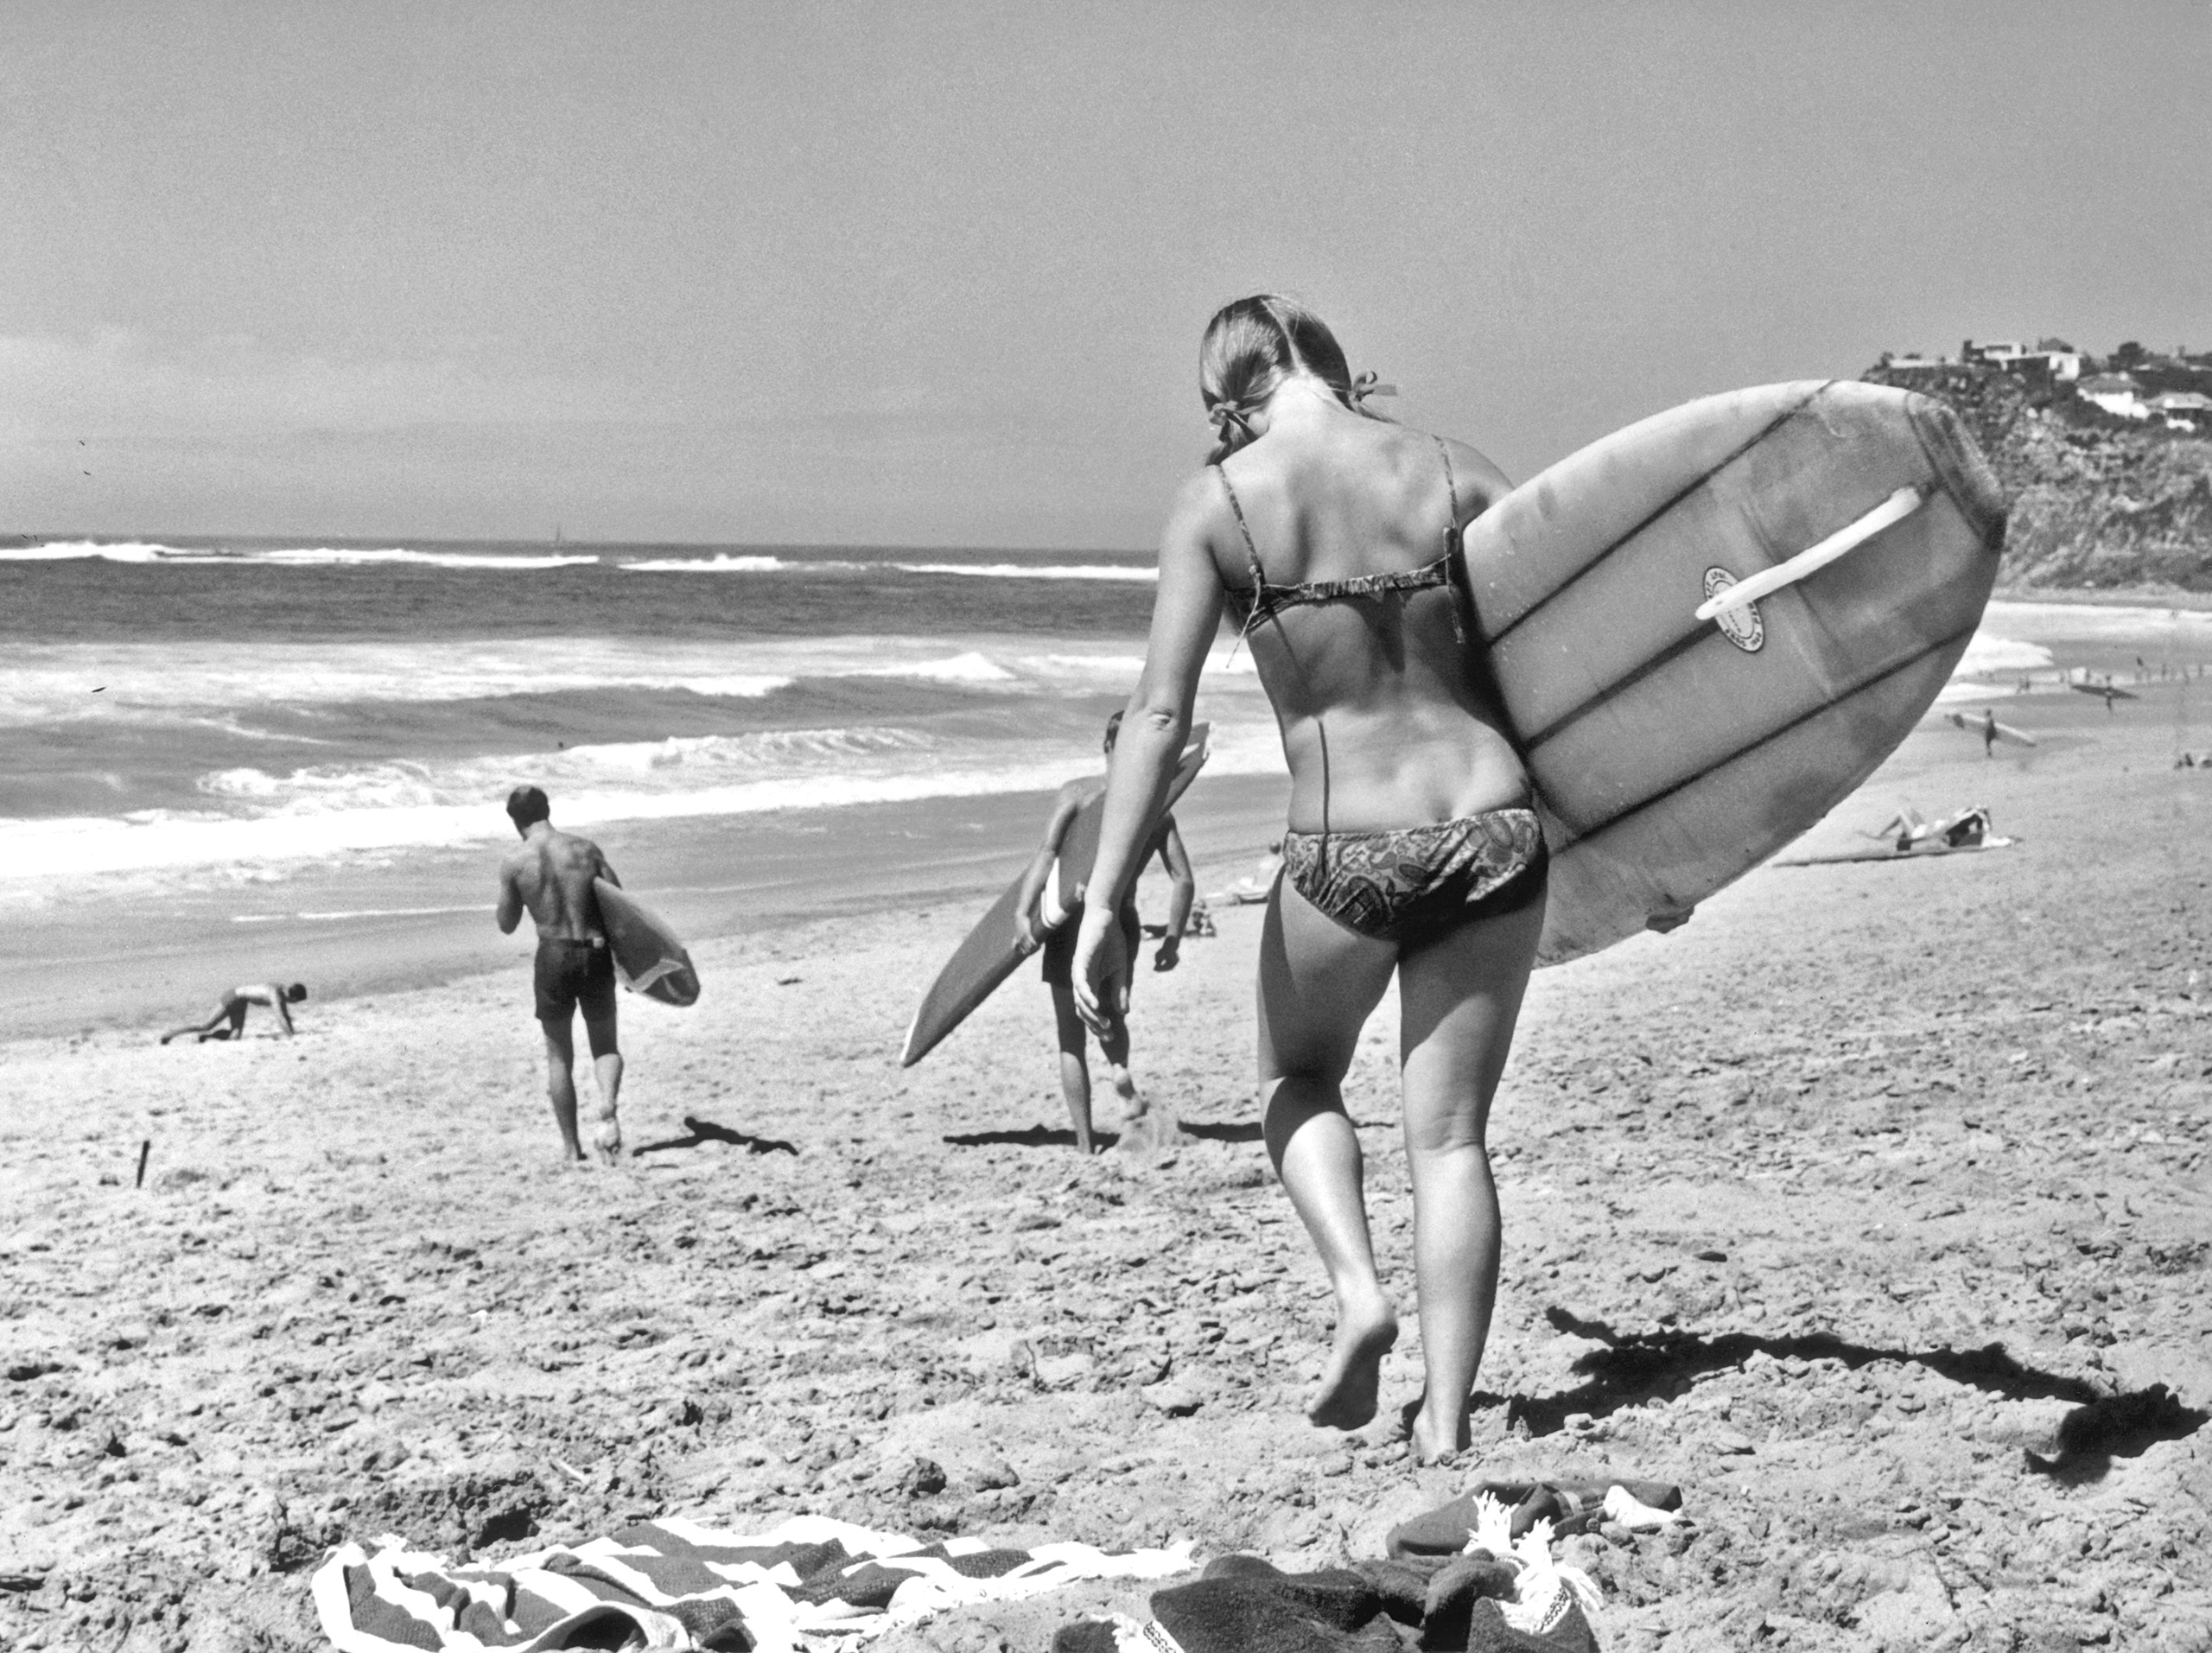 A woman carries her surf board down to the water on a beach near Sydney, Australia, circa 1965.